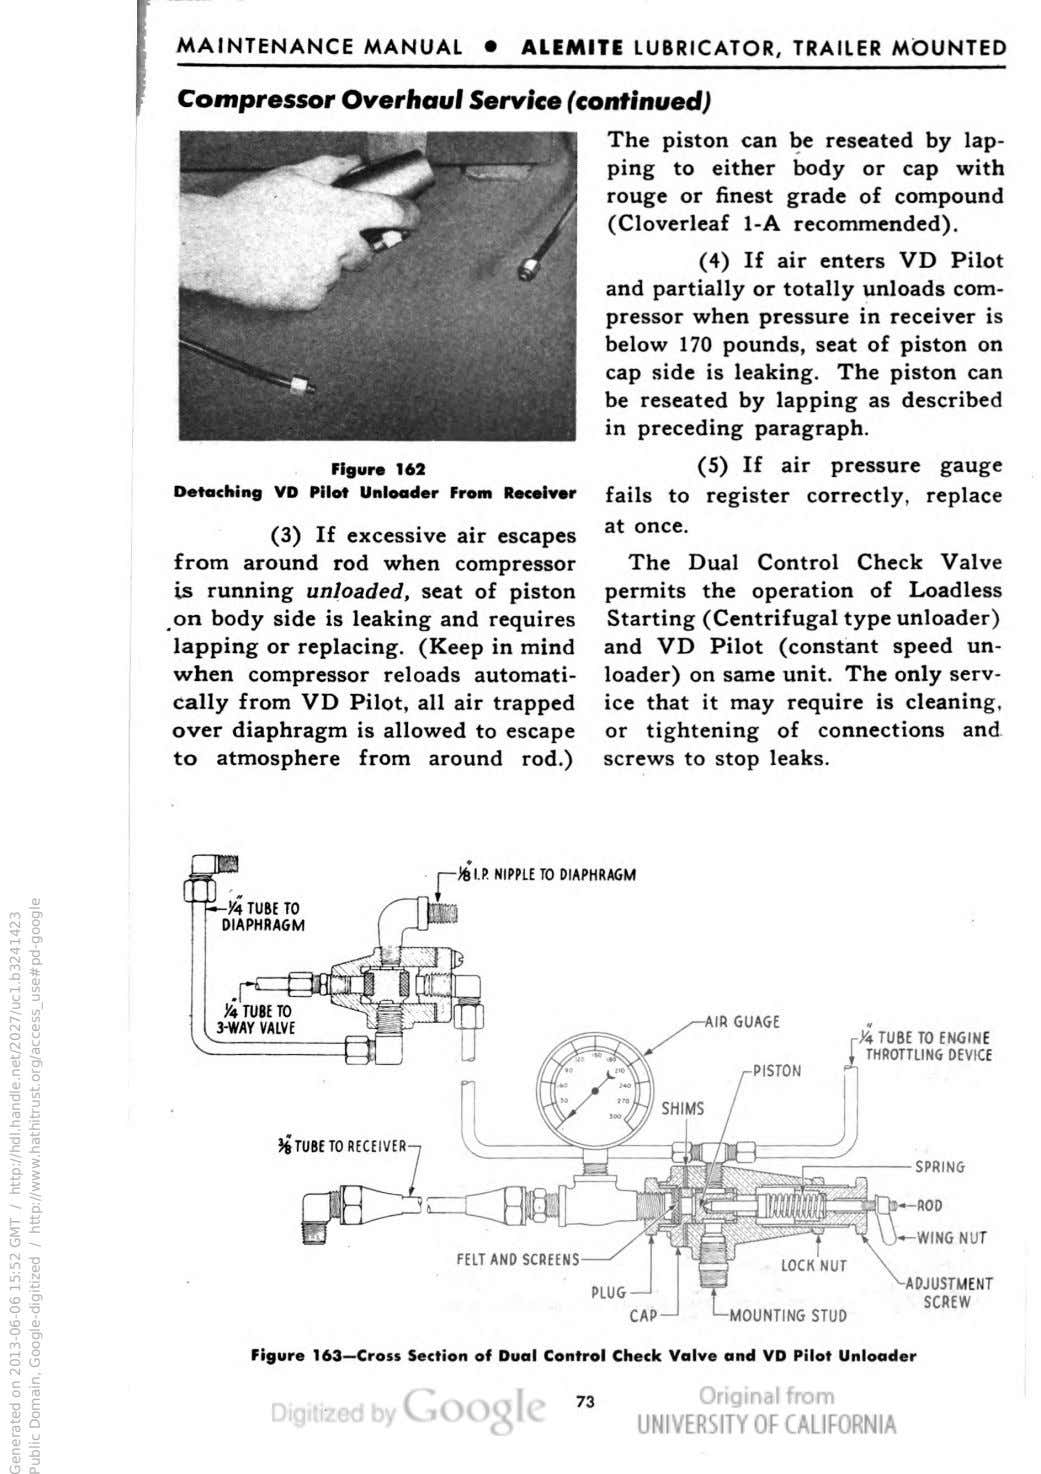 MAINTENANCE MANUAL • ALEMITE LUBRICATOR, TRAILER MOUNTED Compressor Overhaul Service (continued) Figure 162 Detaching